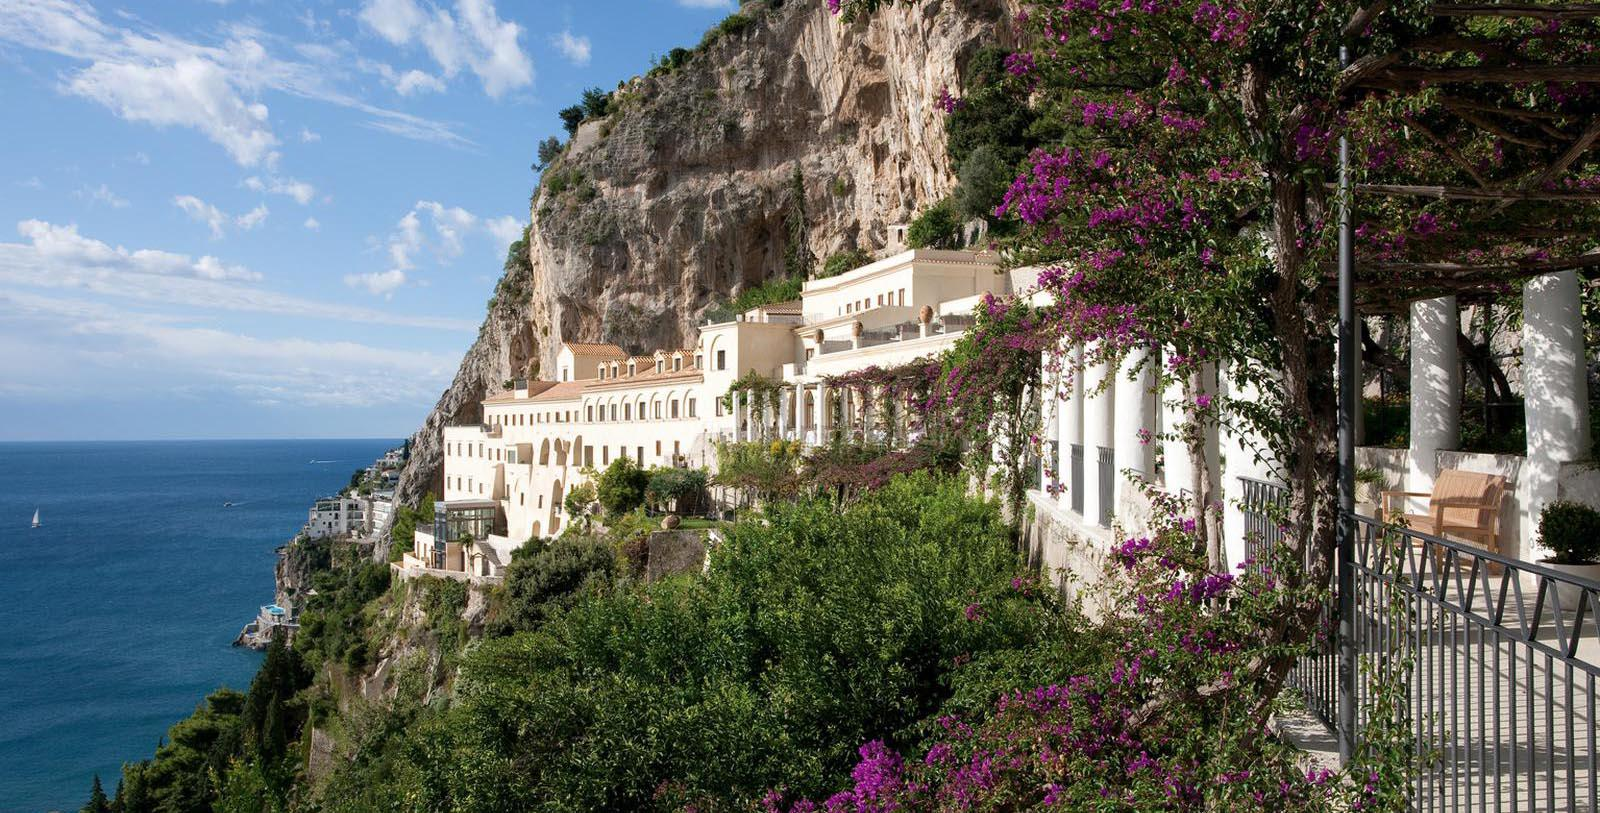 Image of Hotel Exterior NH Collection Grand Hotel Convento di Amalfi, 1212 Member of Historic Hotels Worldwide, in Amalfi, Italy, Special Offers, Discounted Rates, Families, Romantic Escape, Honeymoons, Anniversaries, Reunions